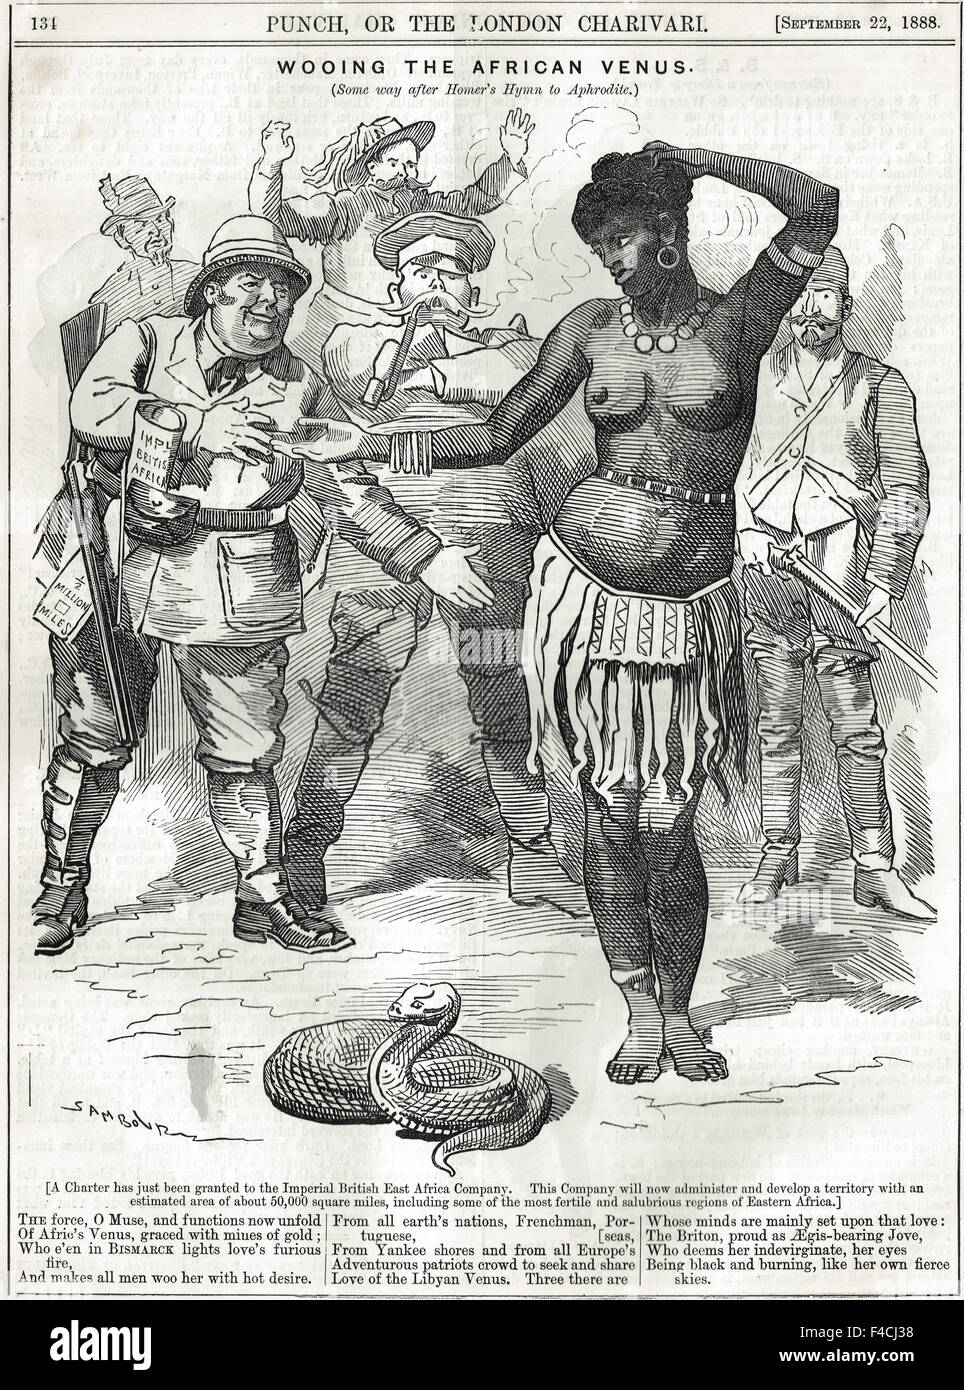 Punch Cartoon 1888 wooing the African Venus - Stock Image